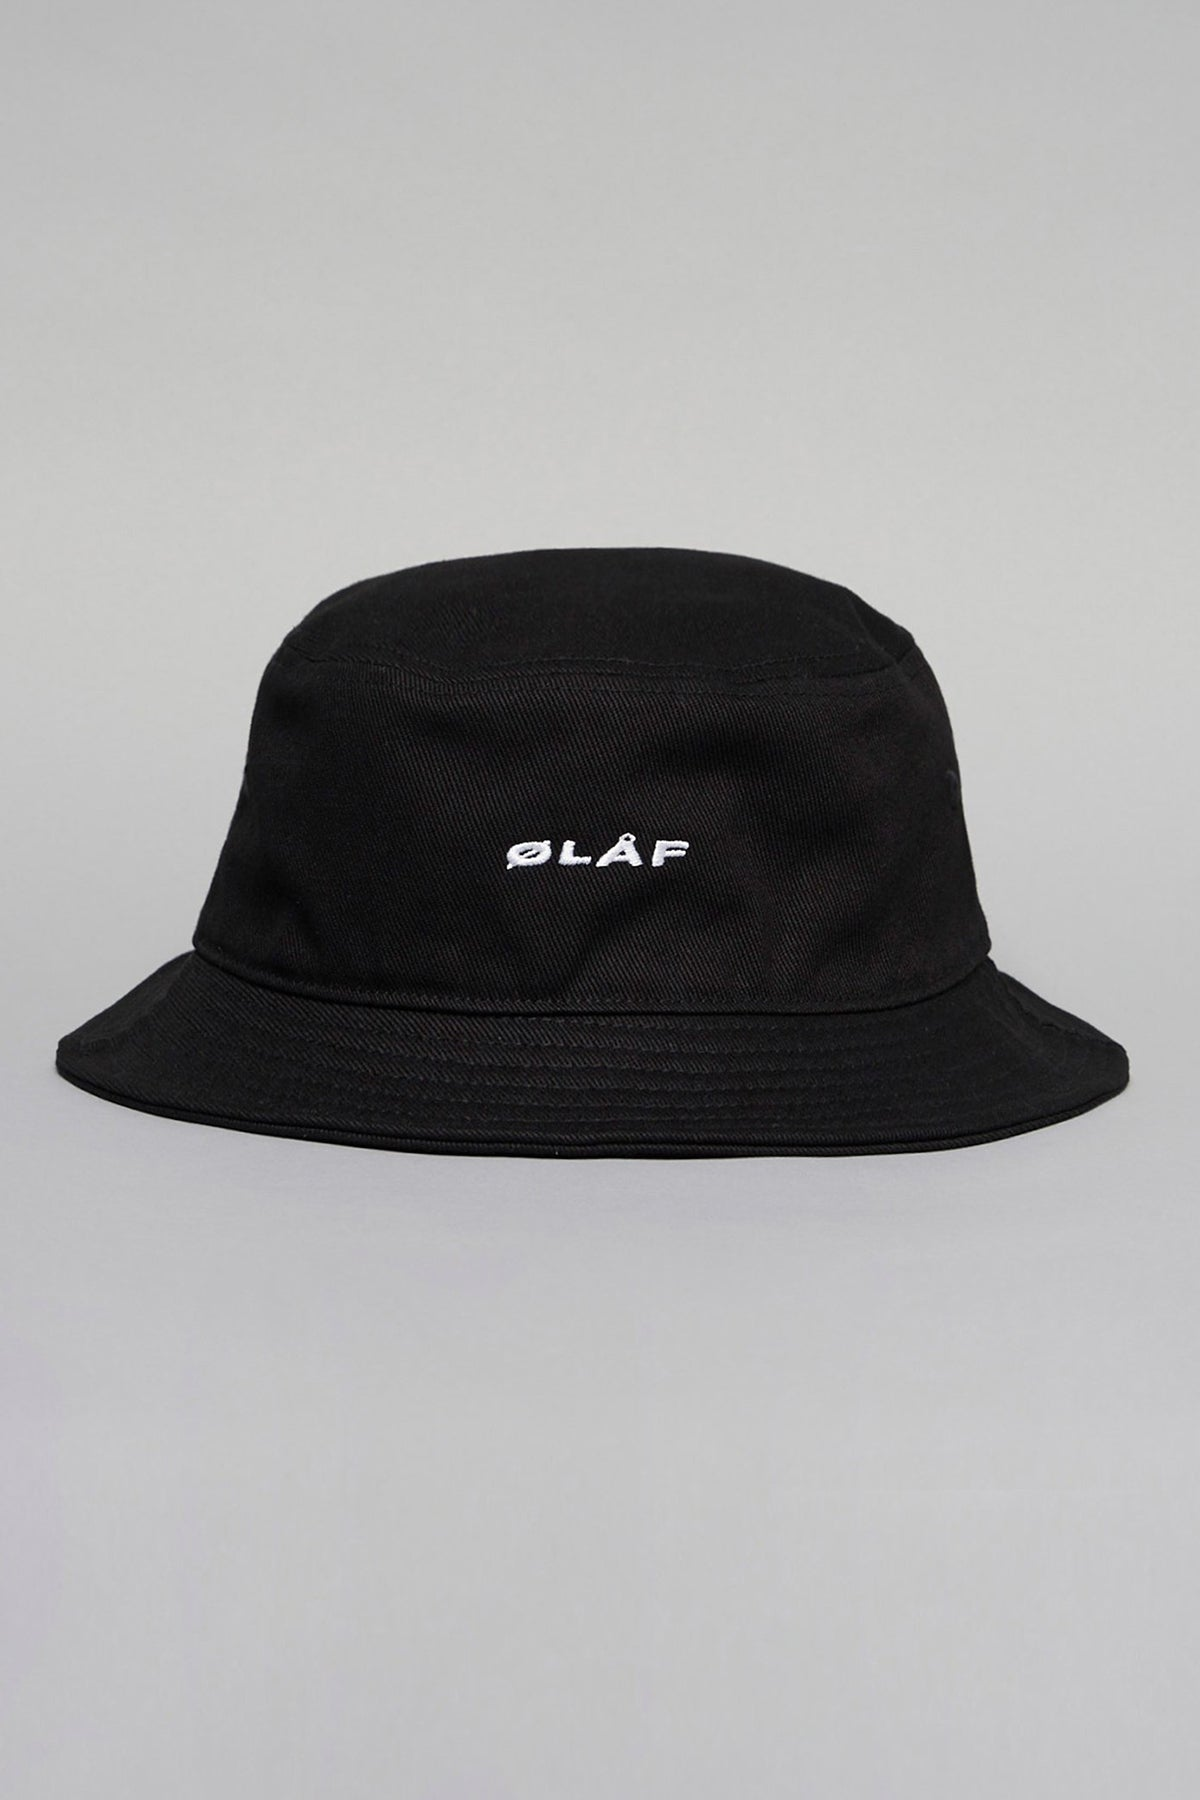 ØLÅF Bucket Hat - Black